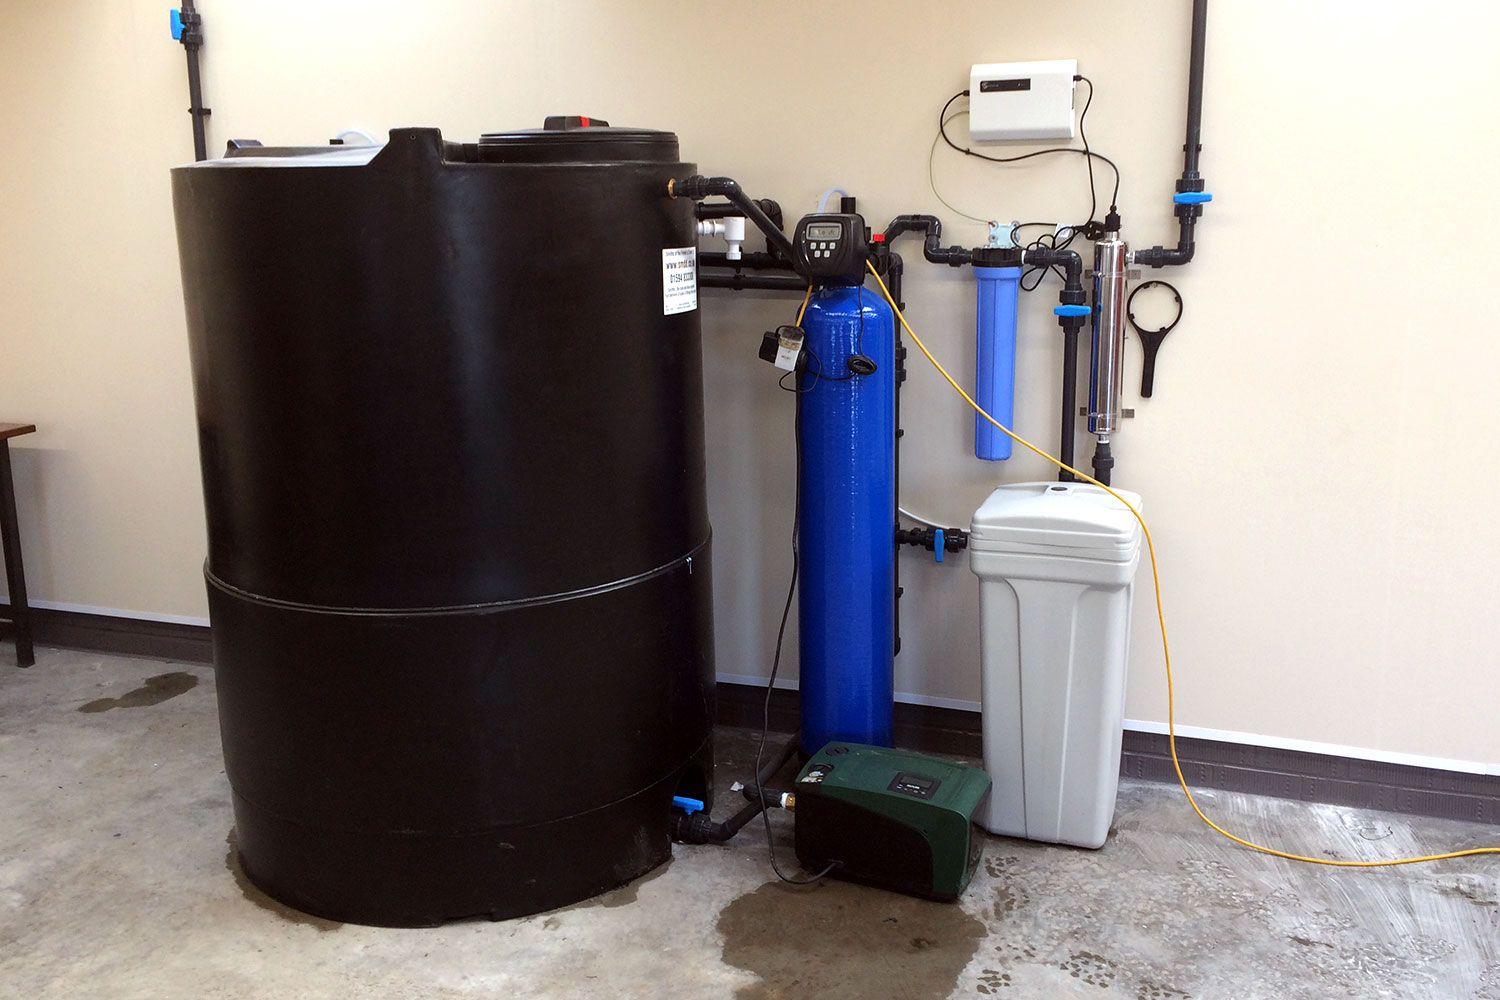 The cold liquor tank and water filtration system.